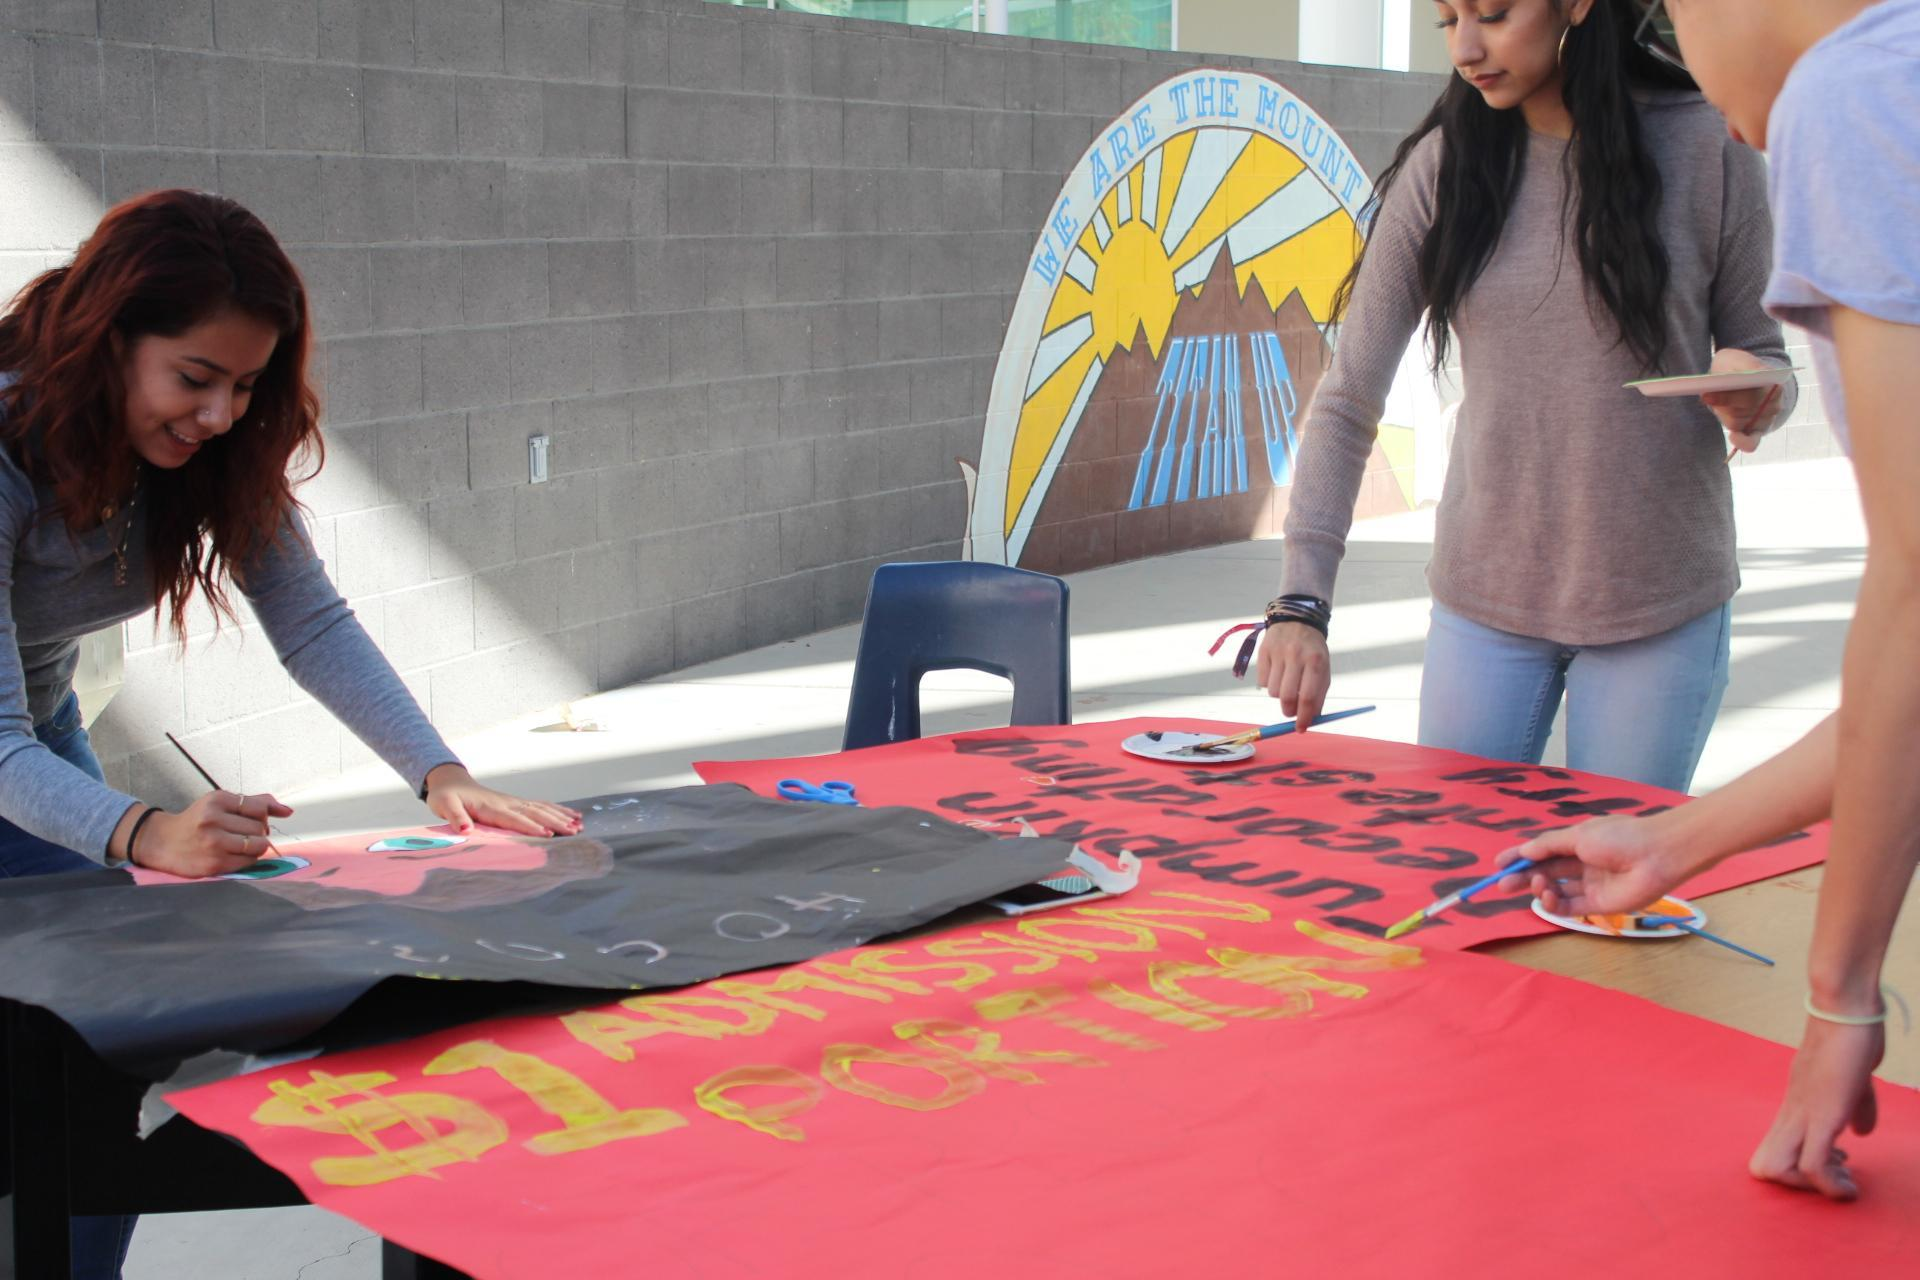 Students working on promoting the Halloween carnival